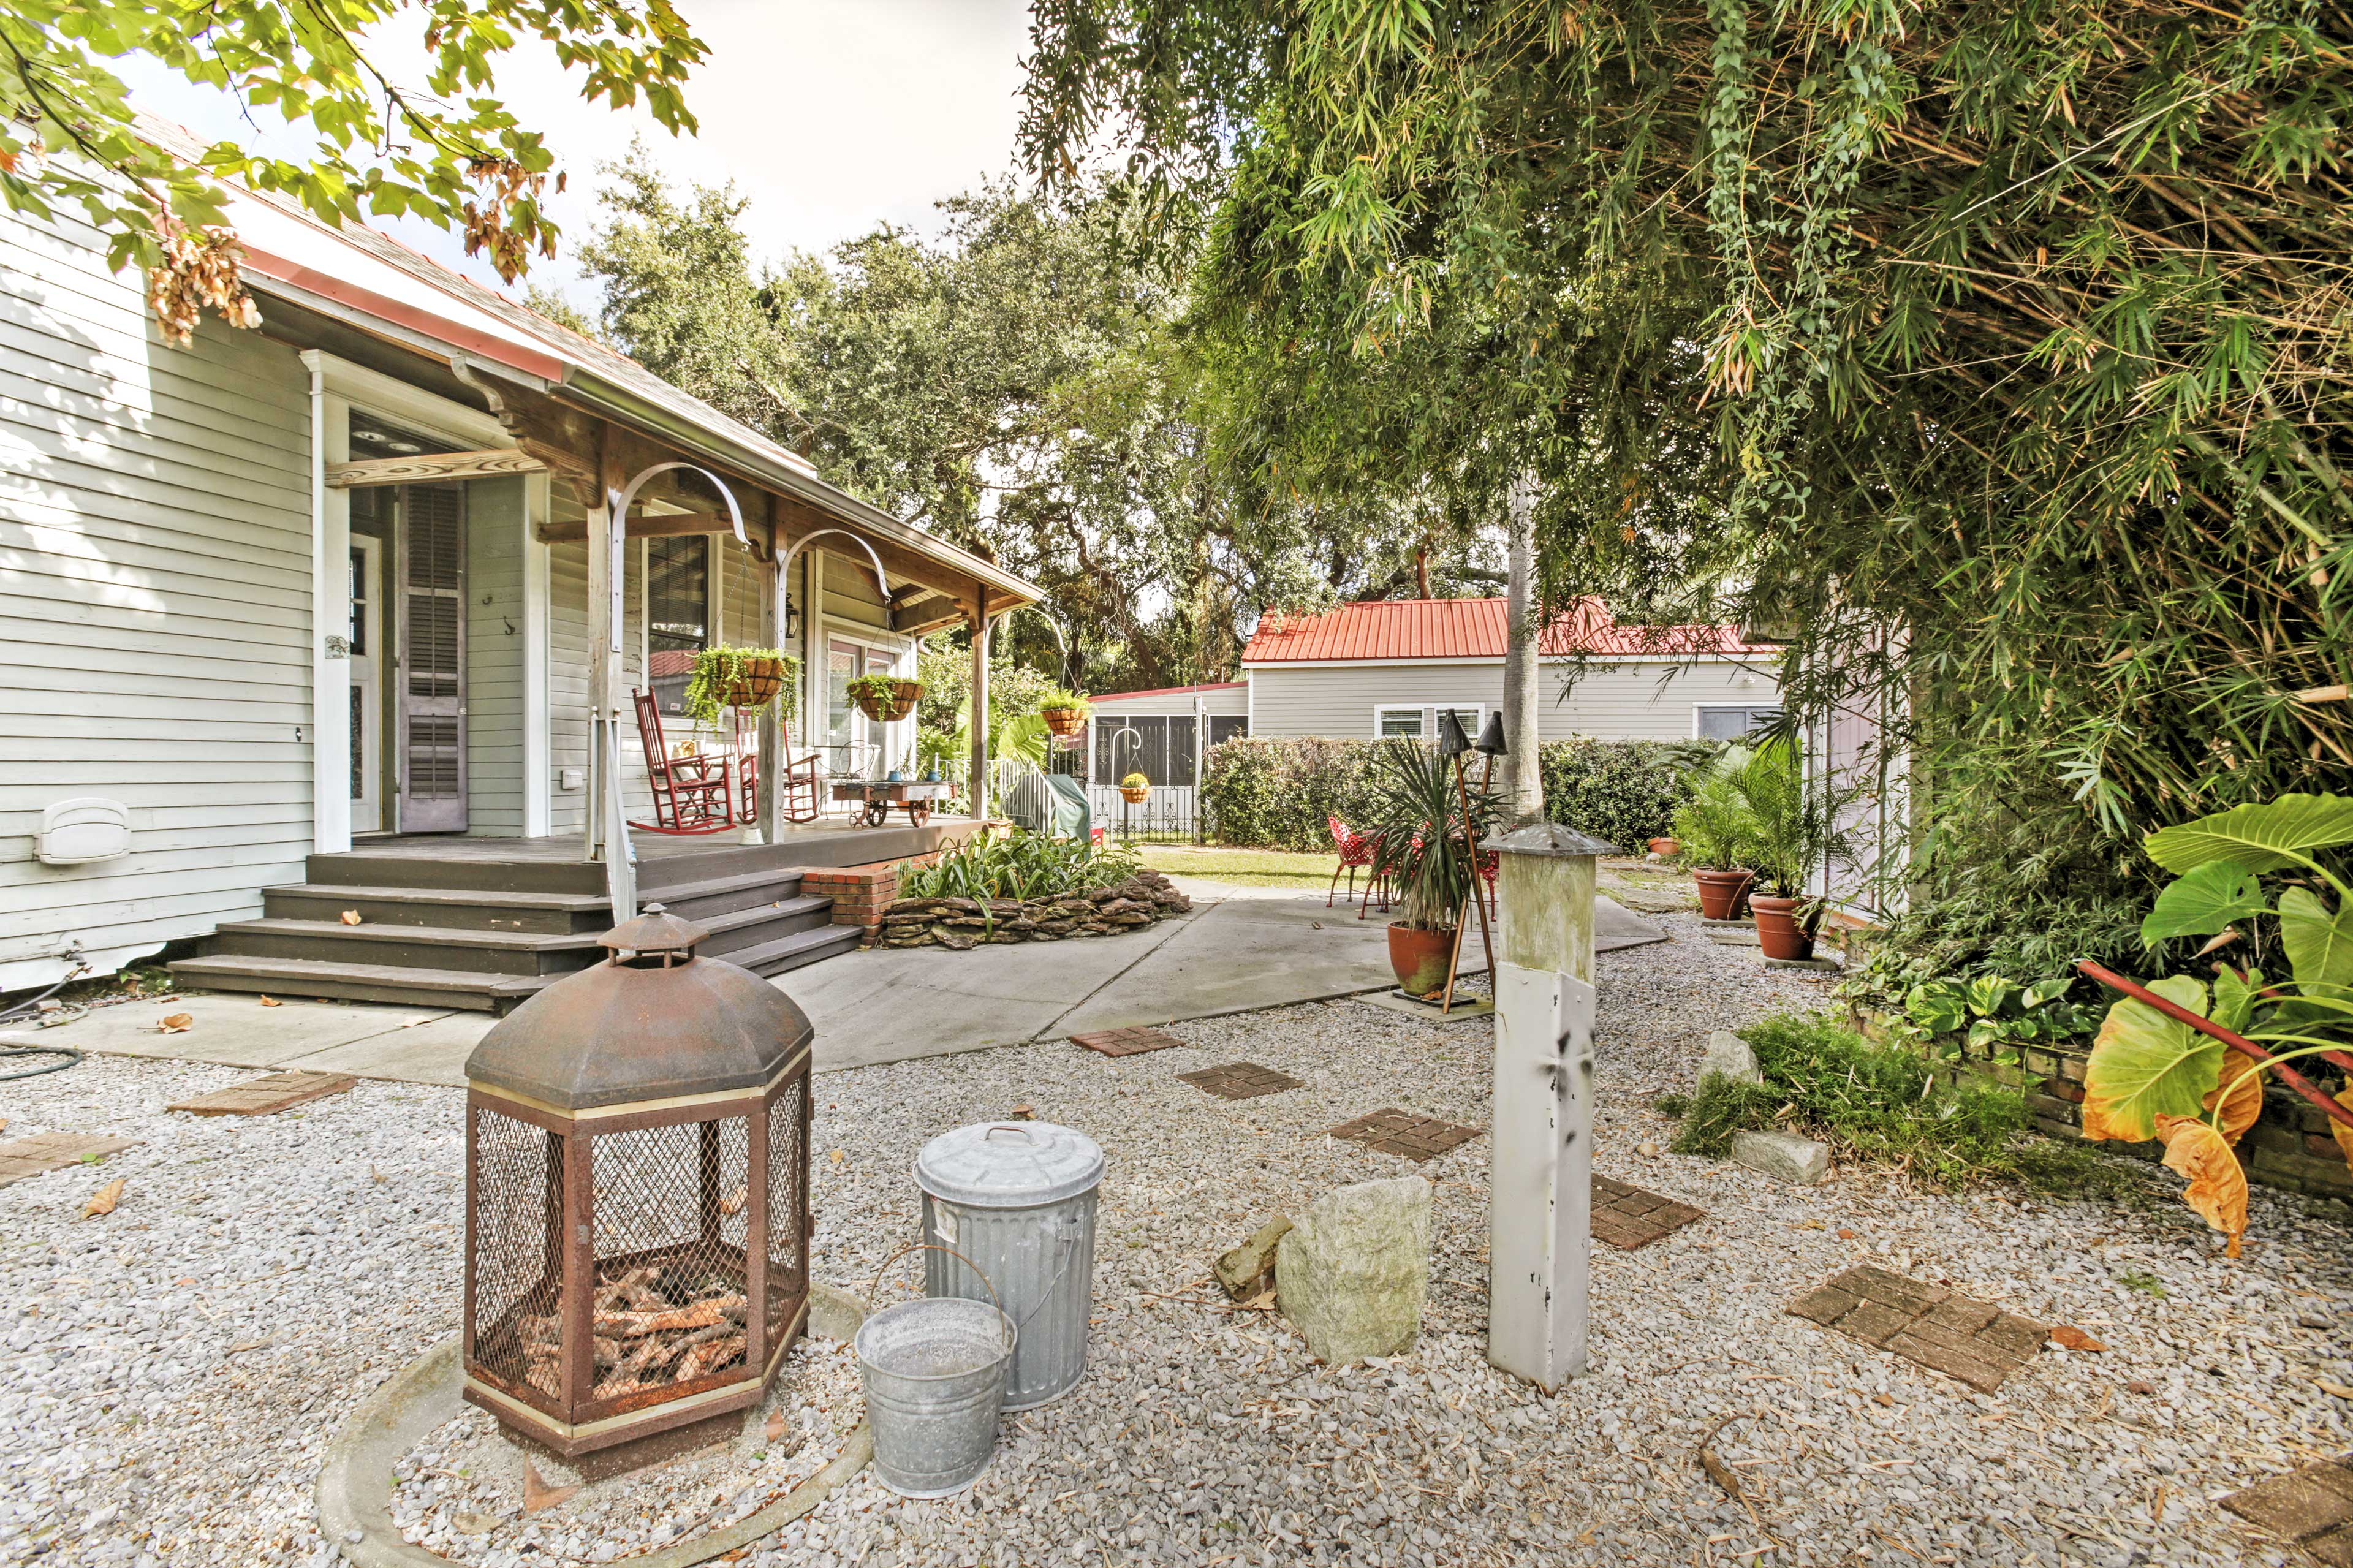 'Chartres Street Cottage' has maintained its historic 1890's architecture!